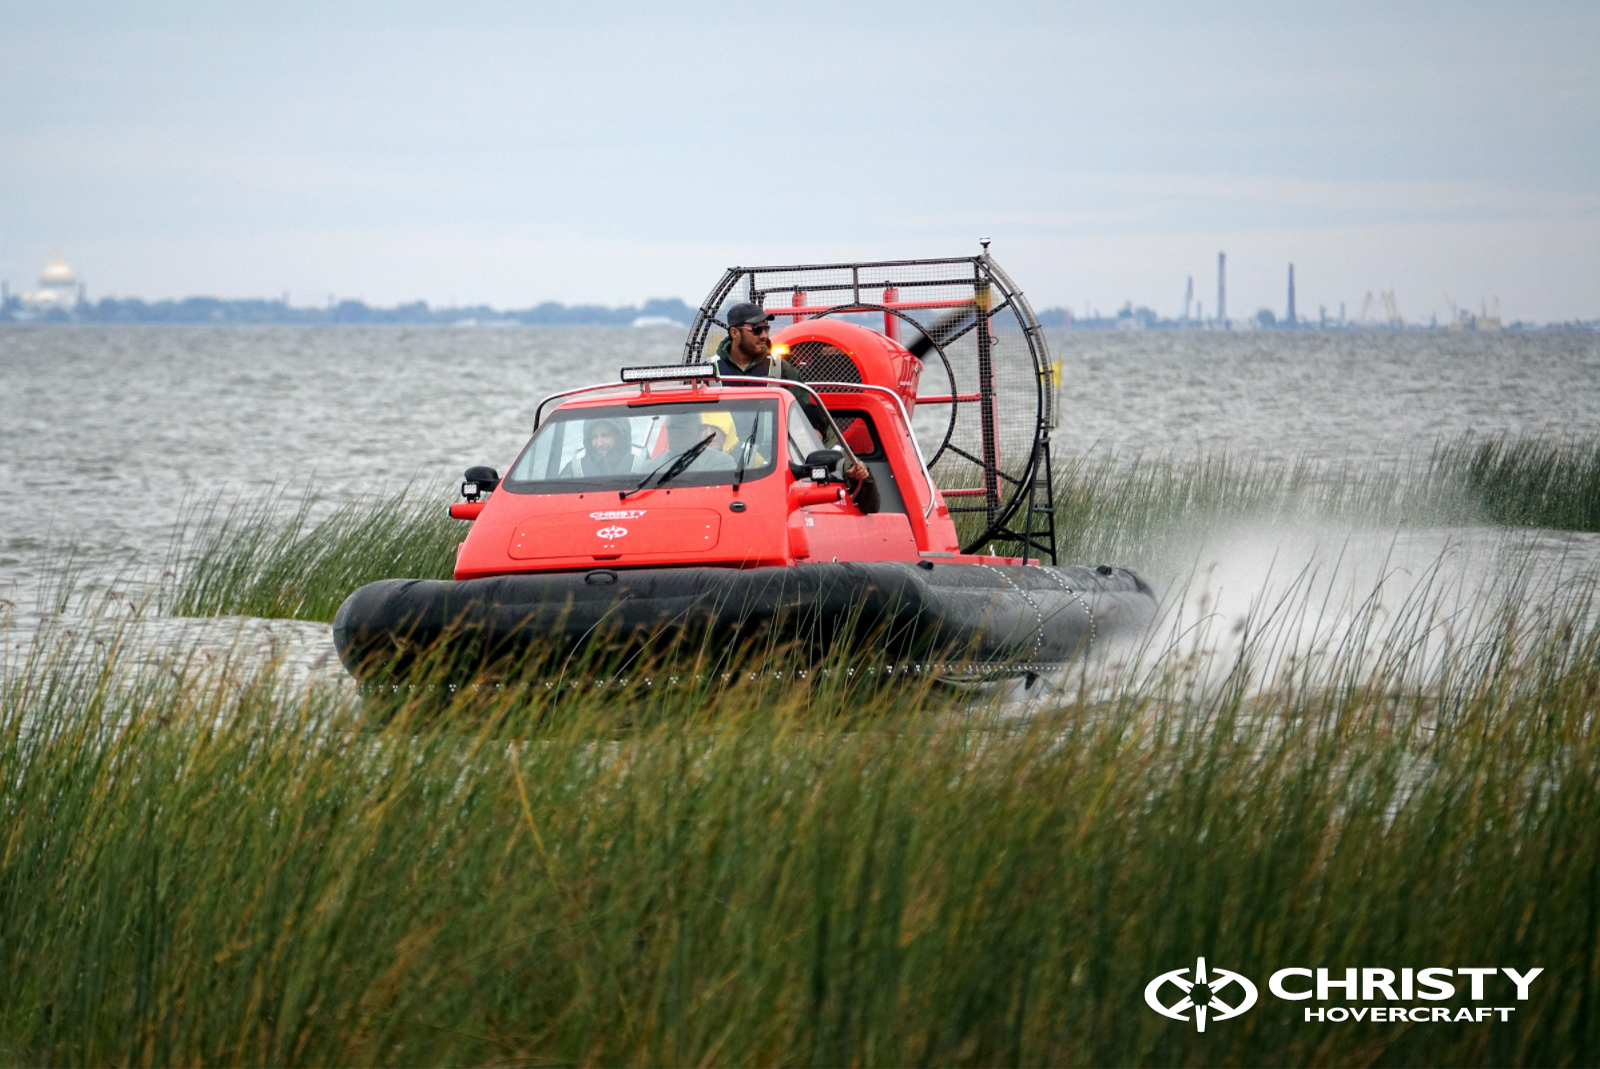 The Christy Hovercraft team has successfully tested the Christy 7186 OC hovercraft for one more US buyer